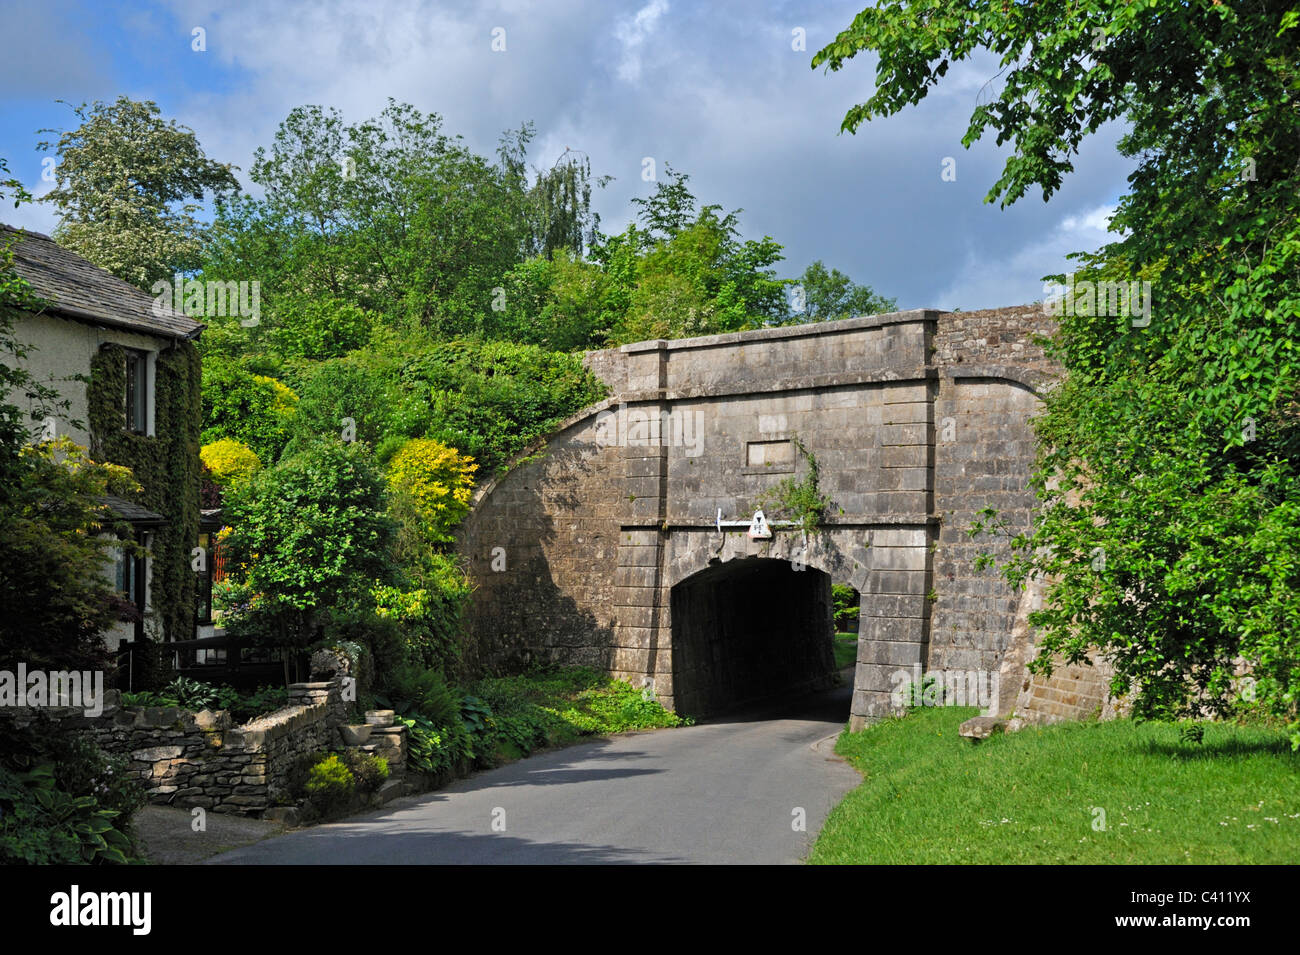 Skew aqueduct on the  Northern Reach of the Lancaster to Kendal canal. Sedgwick, Cumbria, England, United Kingdom, - Stock Image